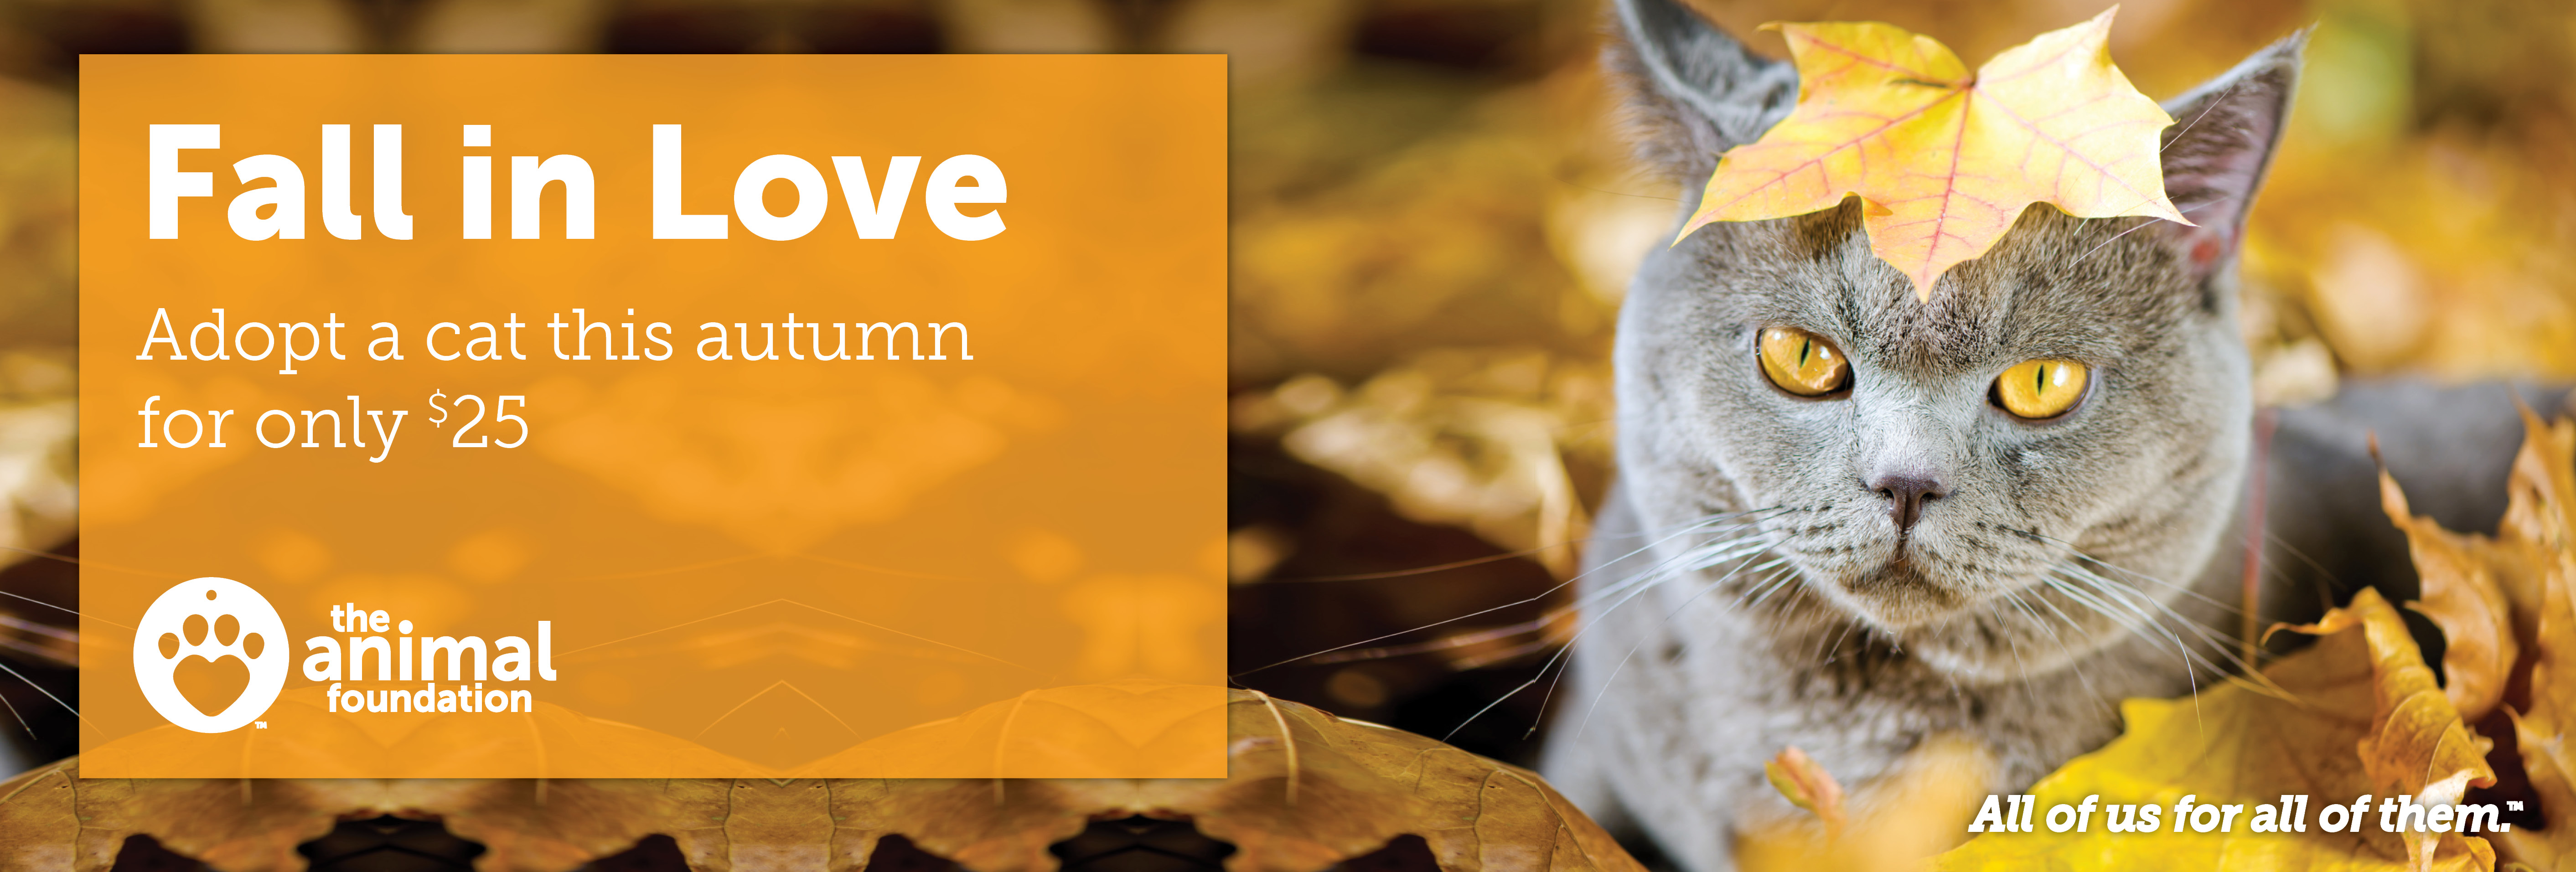 Fall in Love Cat Adoption Promotion